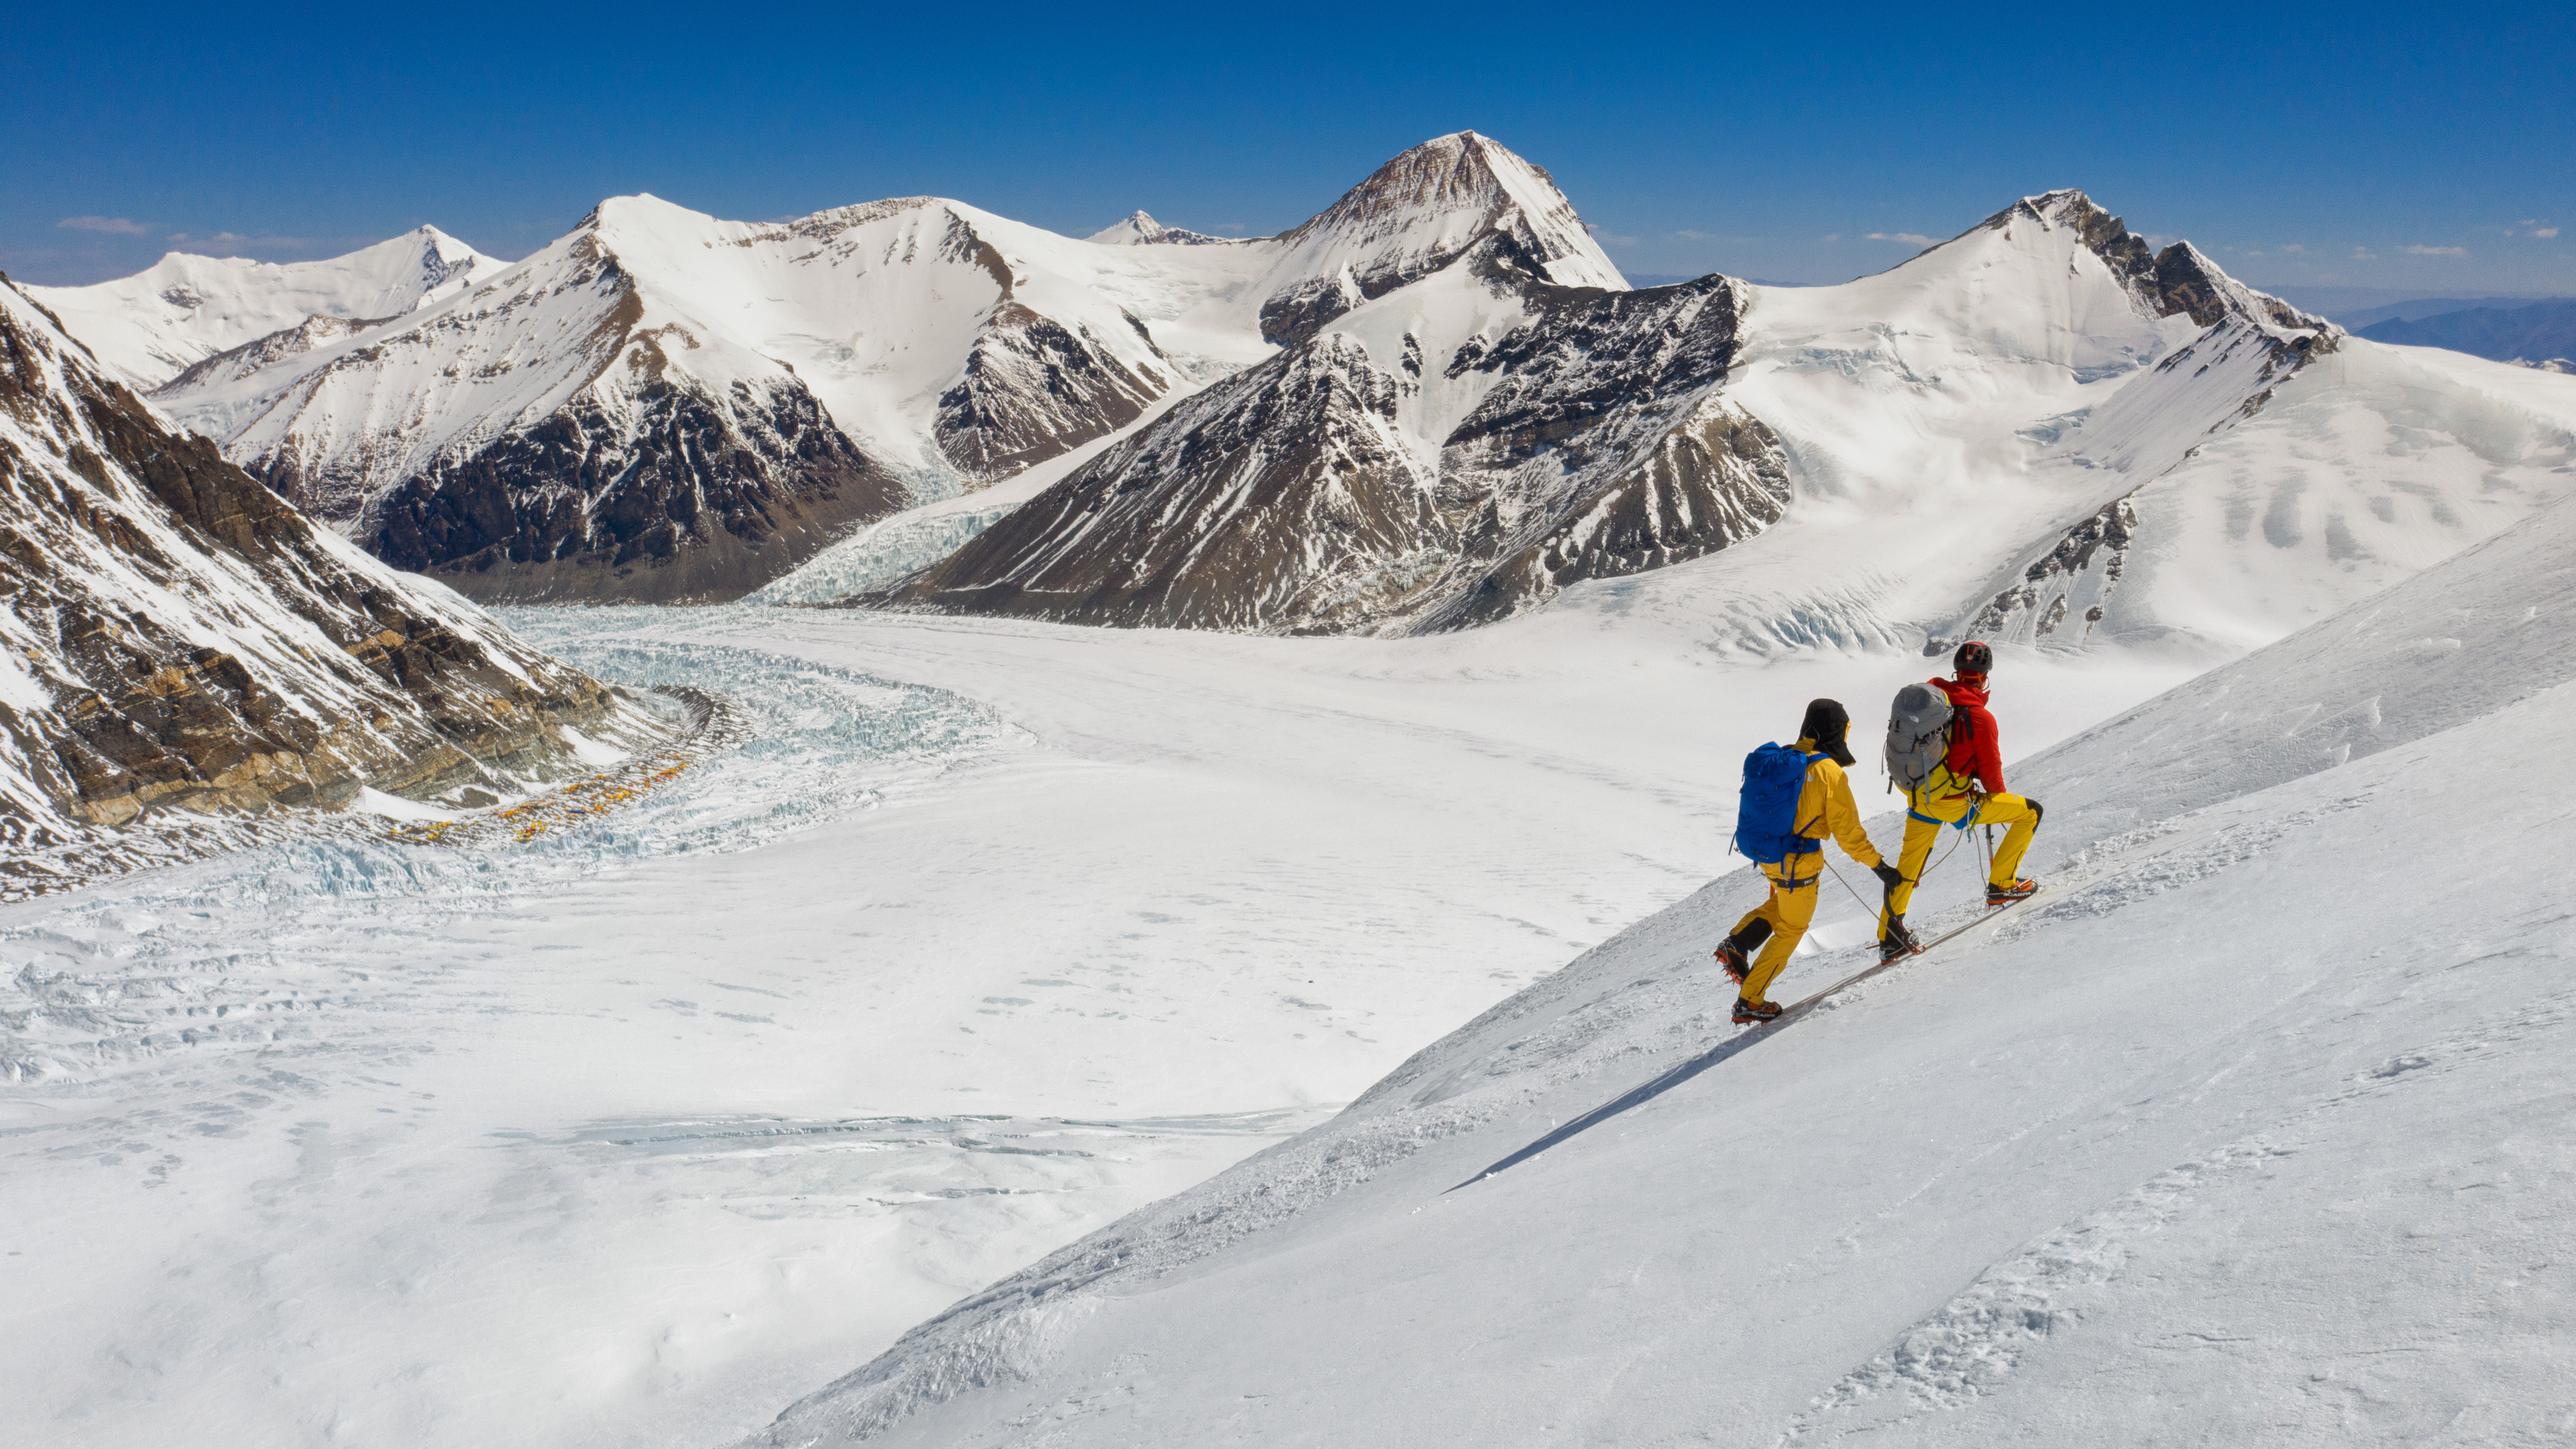 Climber Cory Richards on How to Fix the Mess on Everest